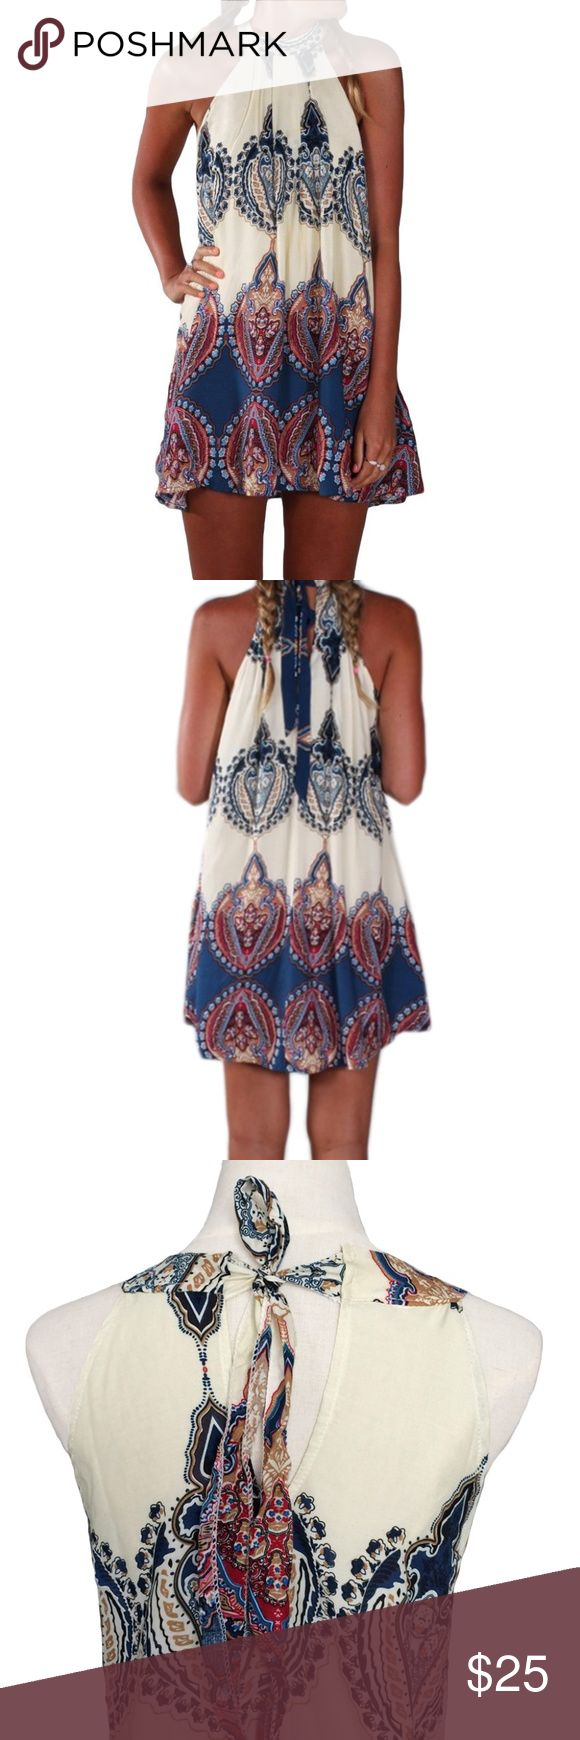 Boho Dress - Bohemian -Sleeveless Halter Flowy Boho Dress - Bohemian -Sleeveless Floral Print Flowy - Bohemian Babe Halter Neck - Sleeveless  Perfect dress to wear as a casual summer dress during the day or evening with sexy shoes and accessories.                                                Available in Small, Medium, or Large Size:S Bust:84cm Length:80cm   Size:M Bust:88cm Length:81cm  Size:L Bust:92cm Length:82cm  Off white, navy blue, purple make a beautiful Aztec/Bohemian pattern…